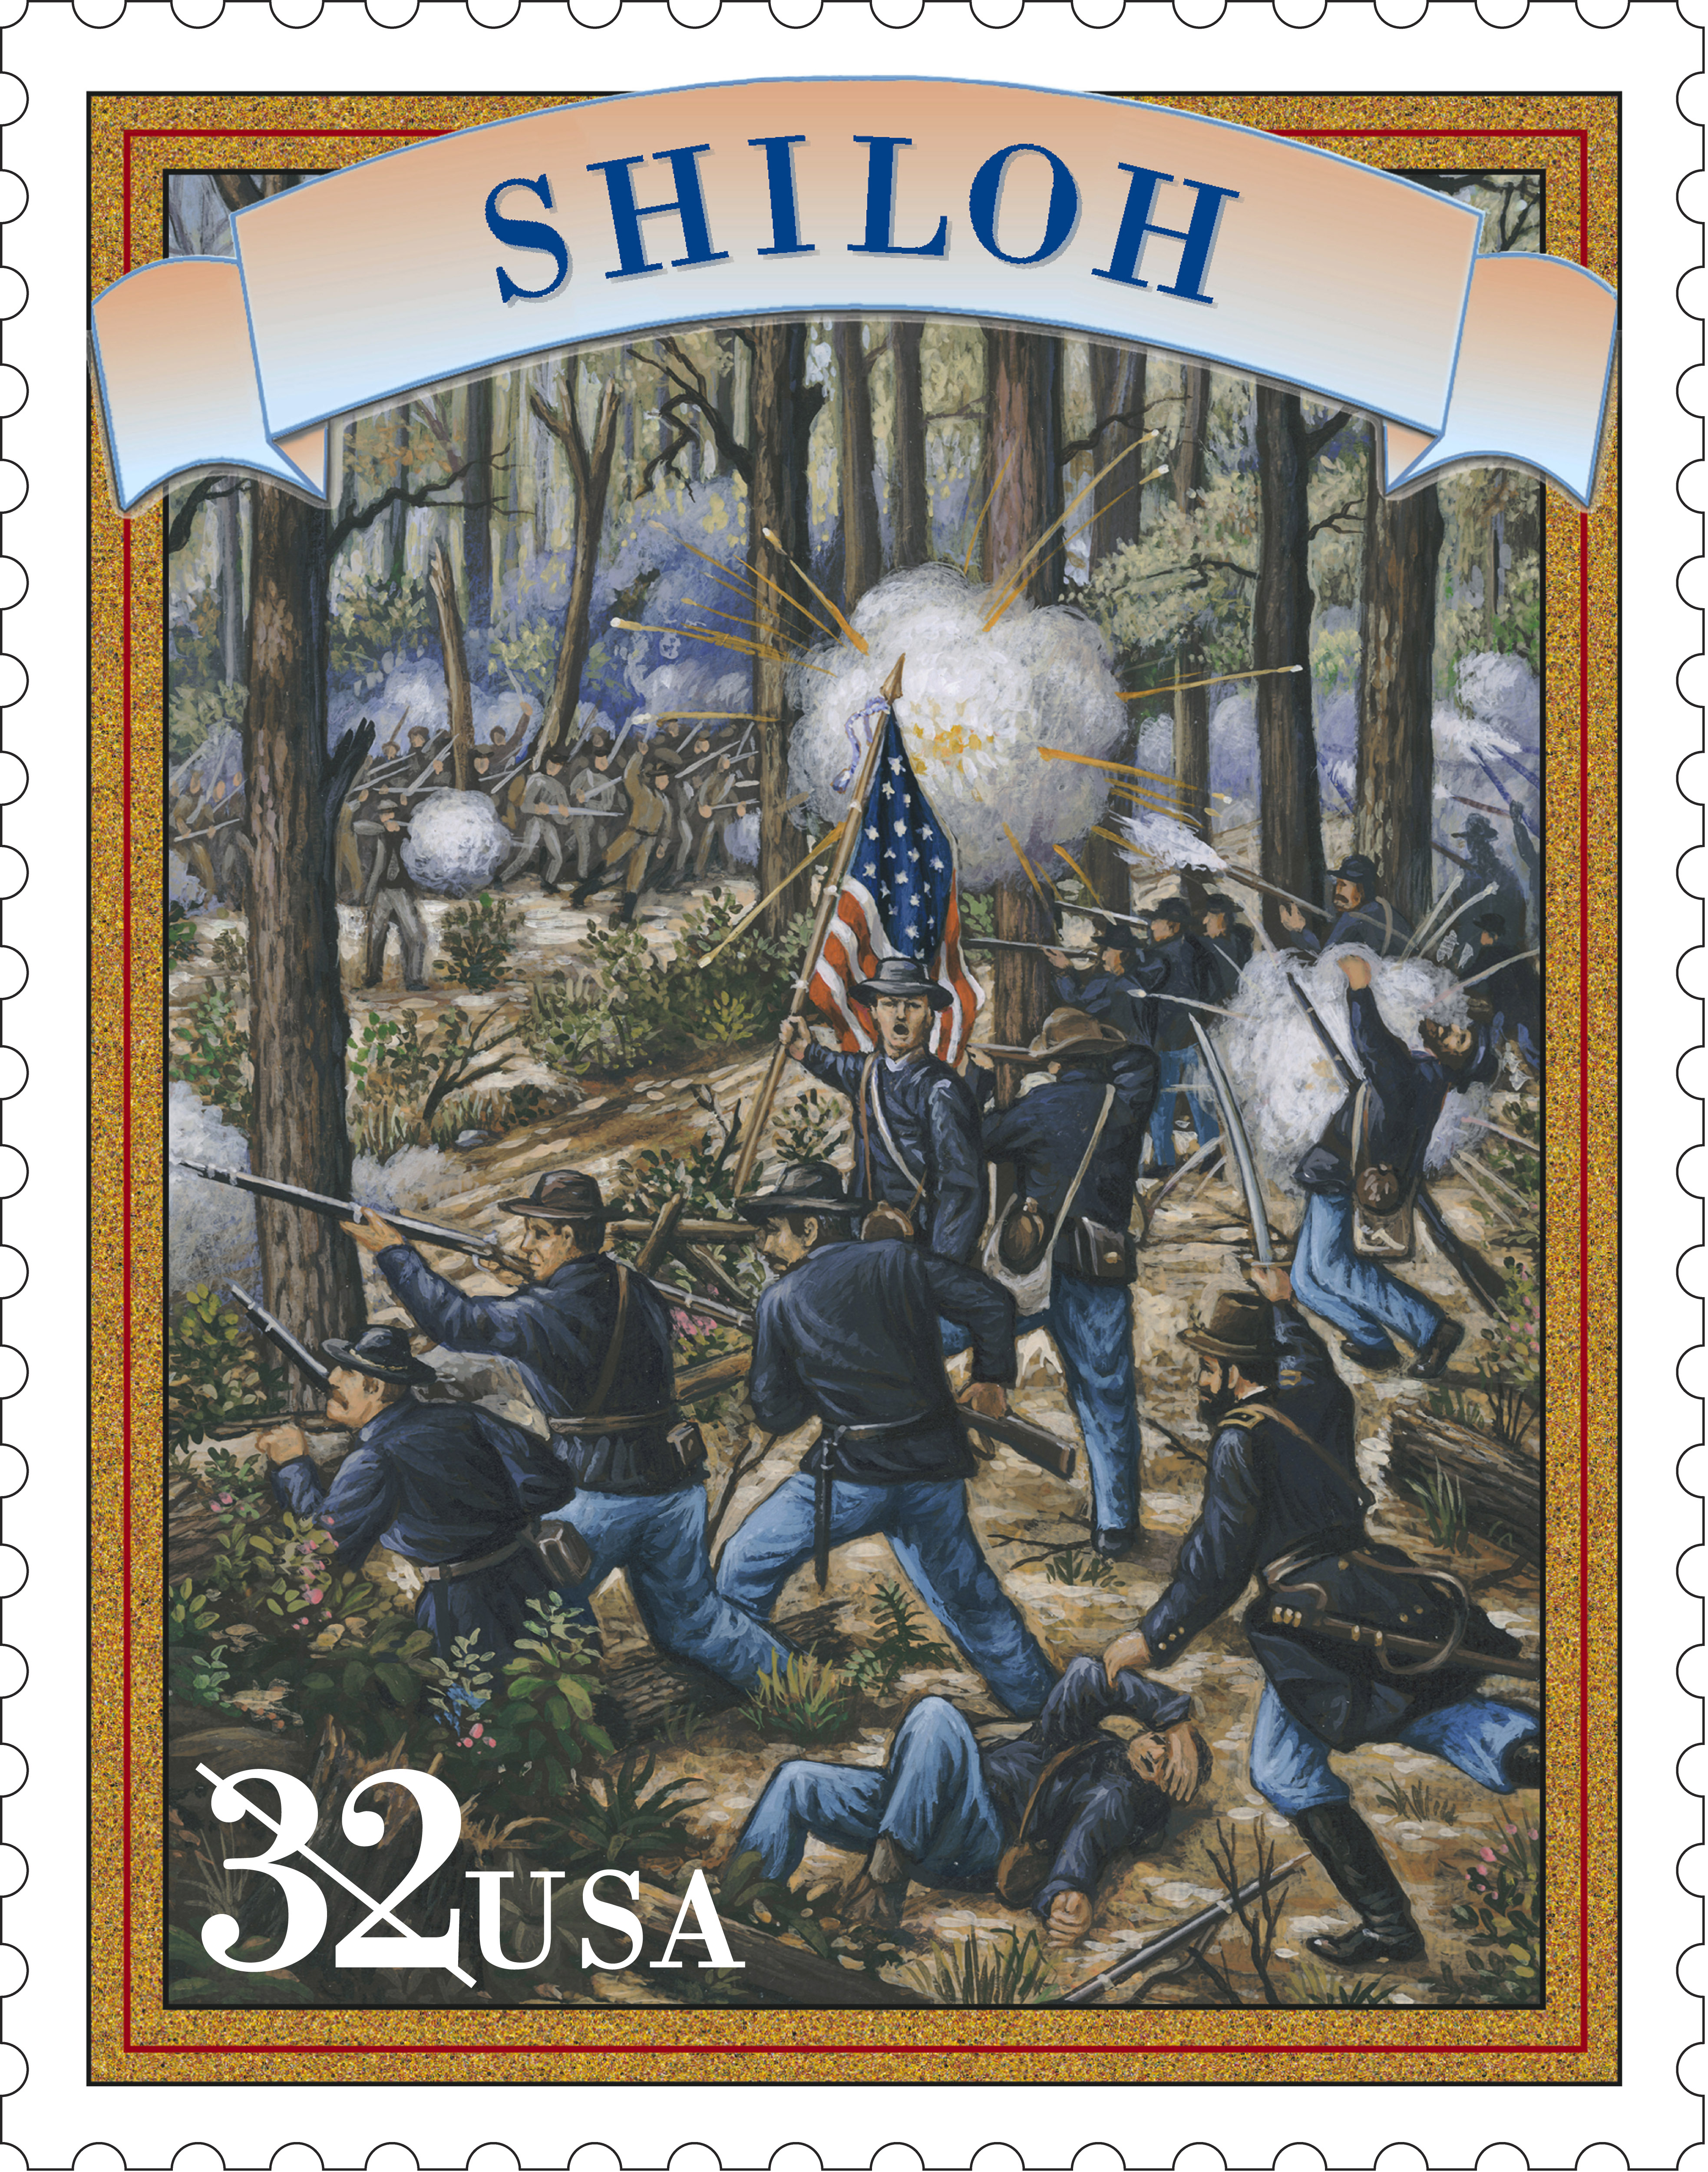 an overview of the infamous battle of shiloh in 1862 The battle of shiloh was a battle in the western theater of the american civil war , fought april 6–7, 1862, in southwestern tennessee  a famous anecdote  encapsulates grant's unflinching attitude to temporary setbacks and his  the  war would continue, at great cost in casualties and resources, until the  confederacy.